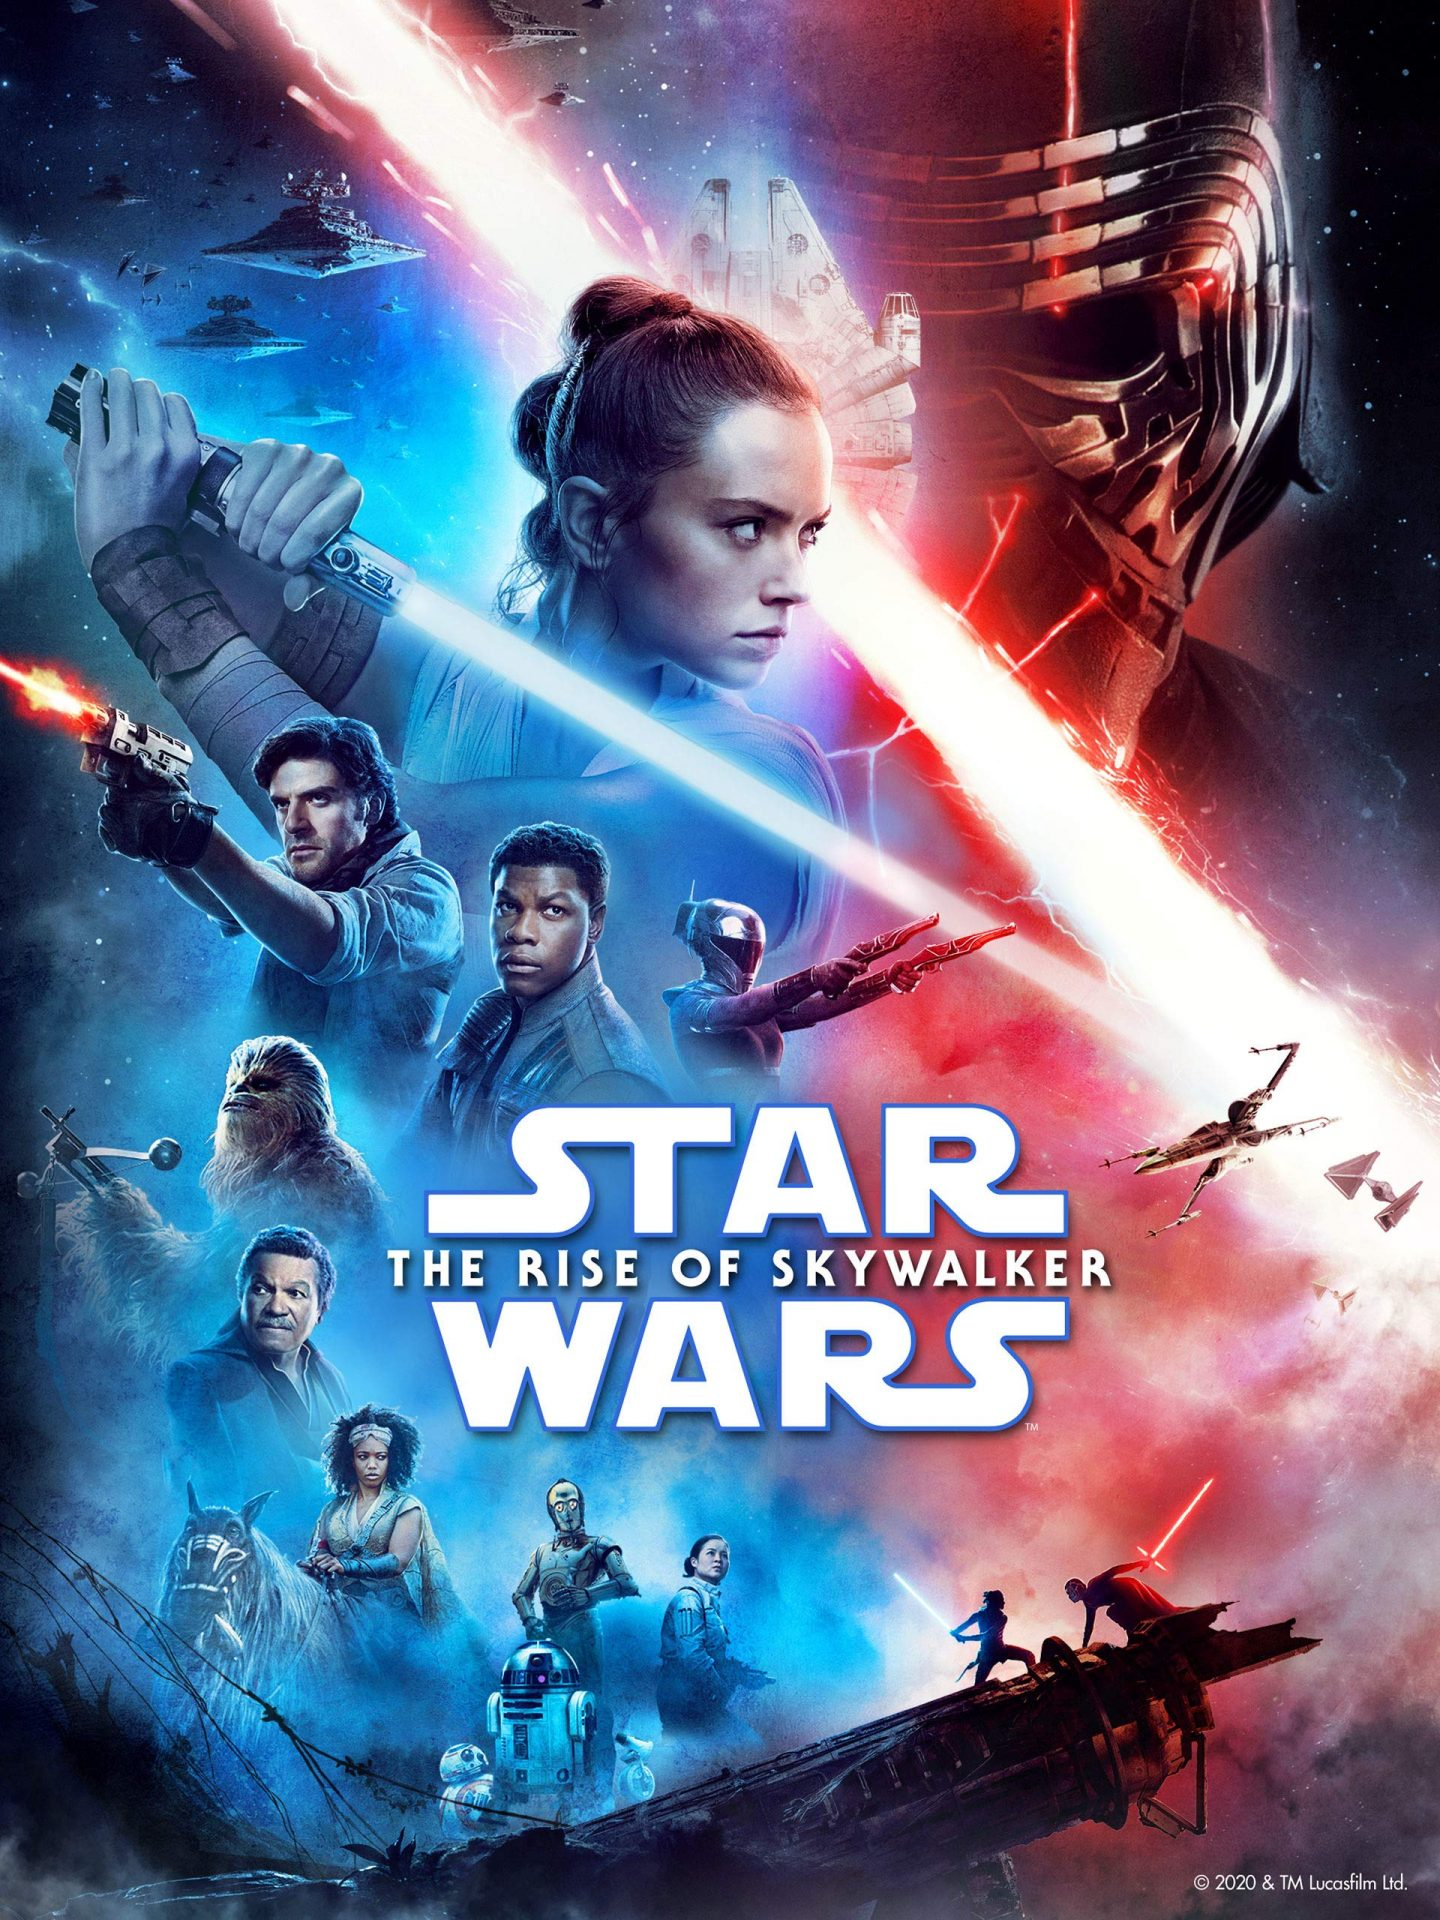 star wars day amazon prime video - May The 4th With You (Dia de Star Wars): tudo o que precisa saber